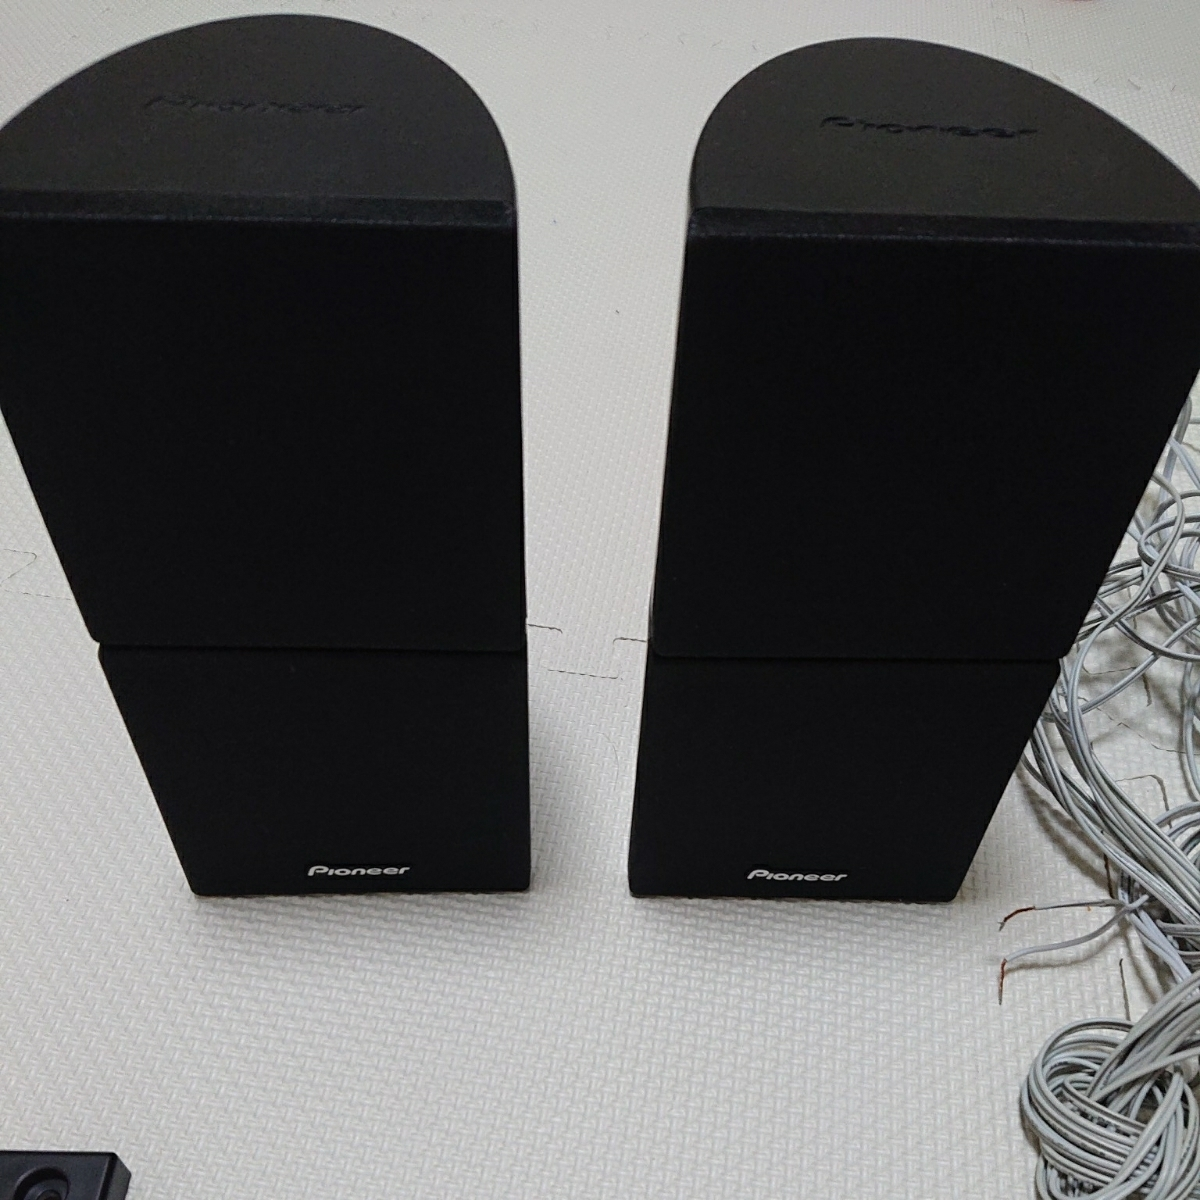 PIONEER S-SWR323 スピーカー セット 5.1ch_画像2